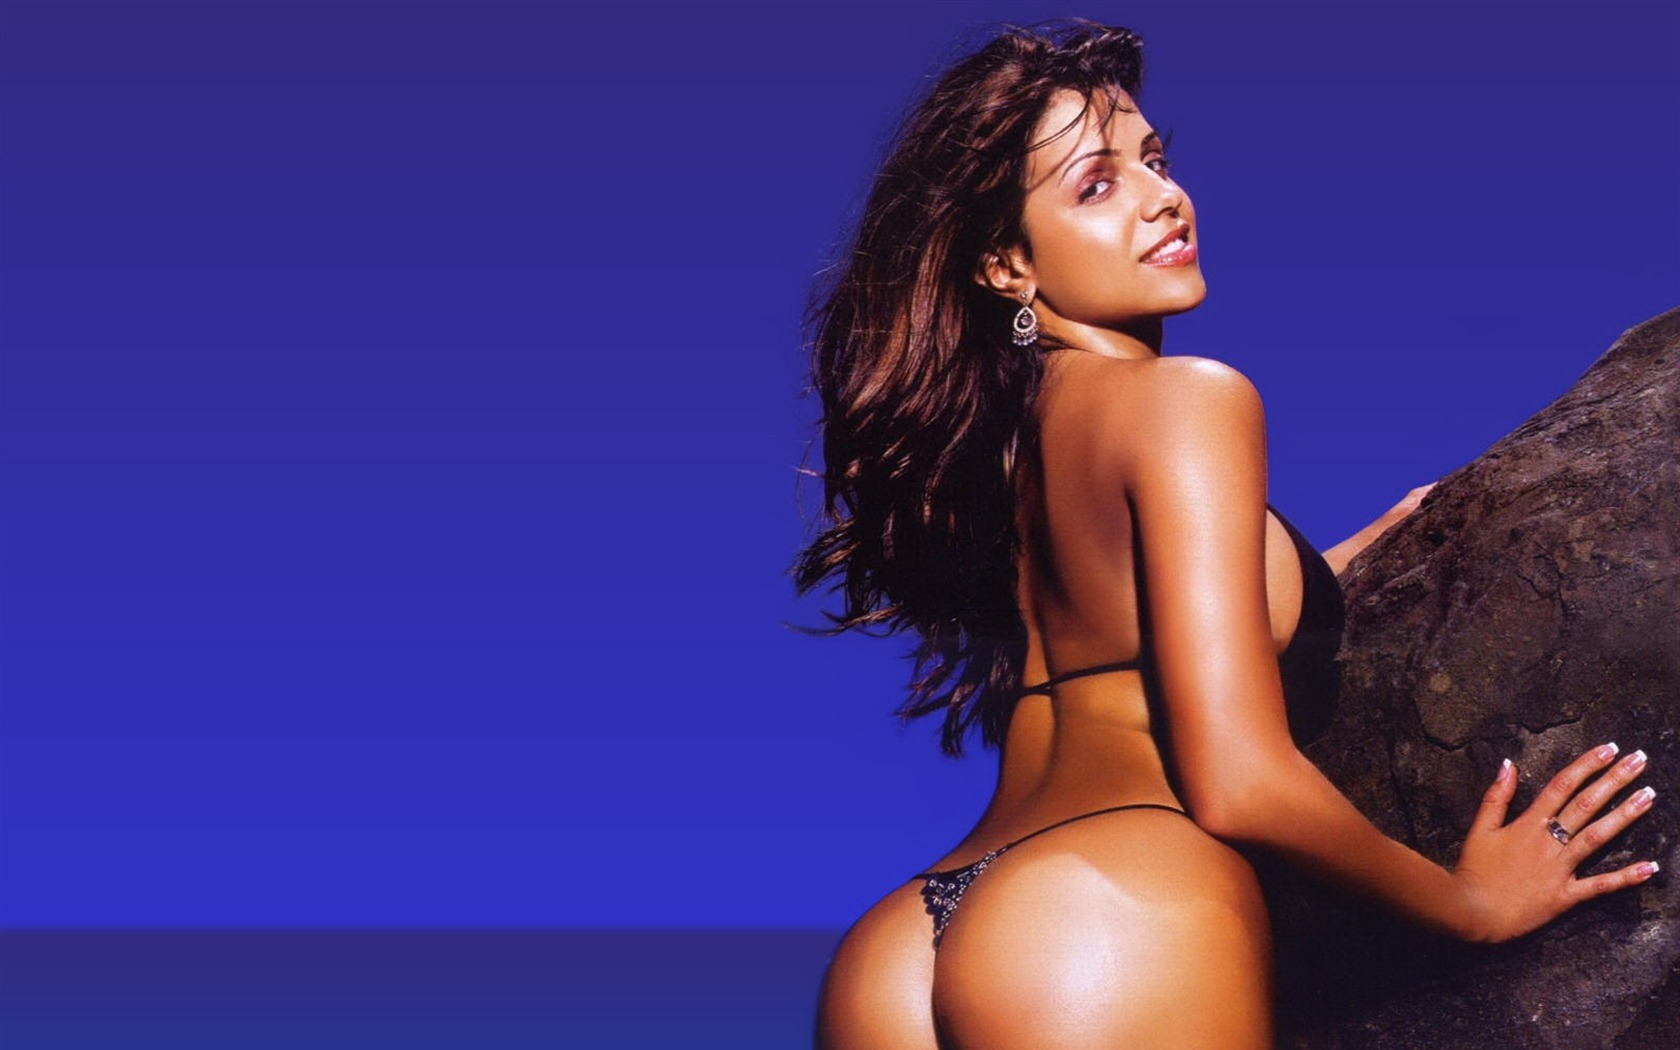 Vida Guerra #022 - 1680x1050 Wallpapers Pictures Photos Images